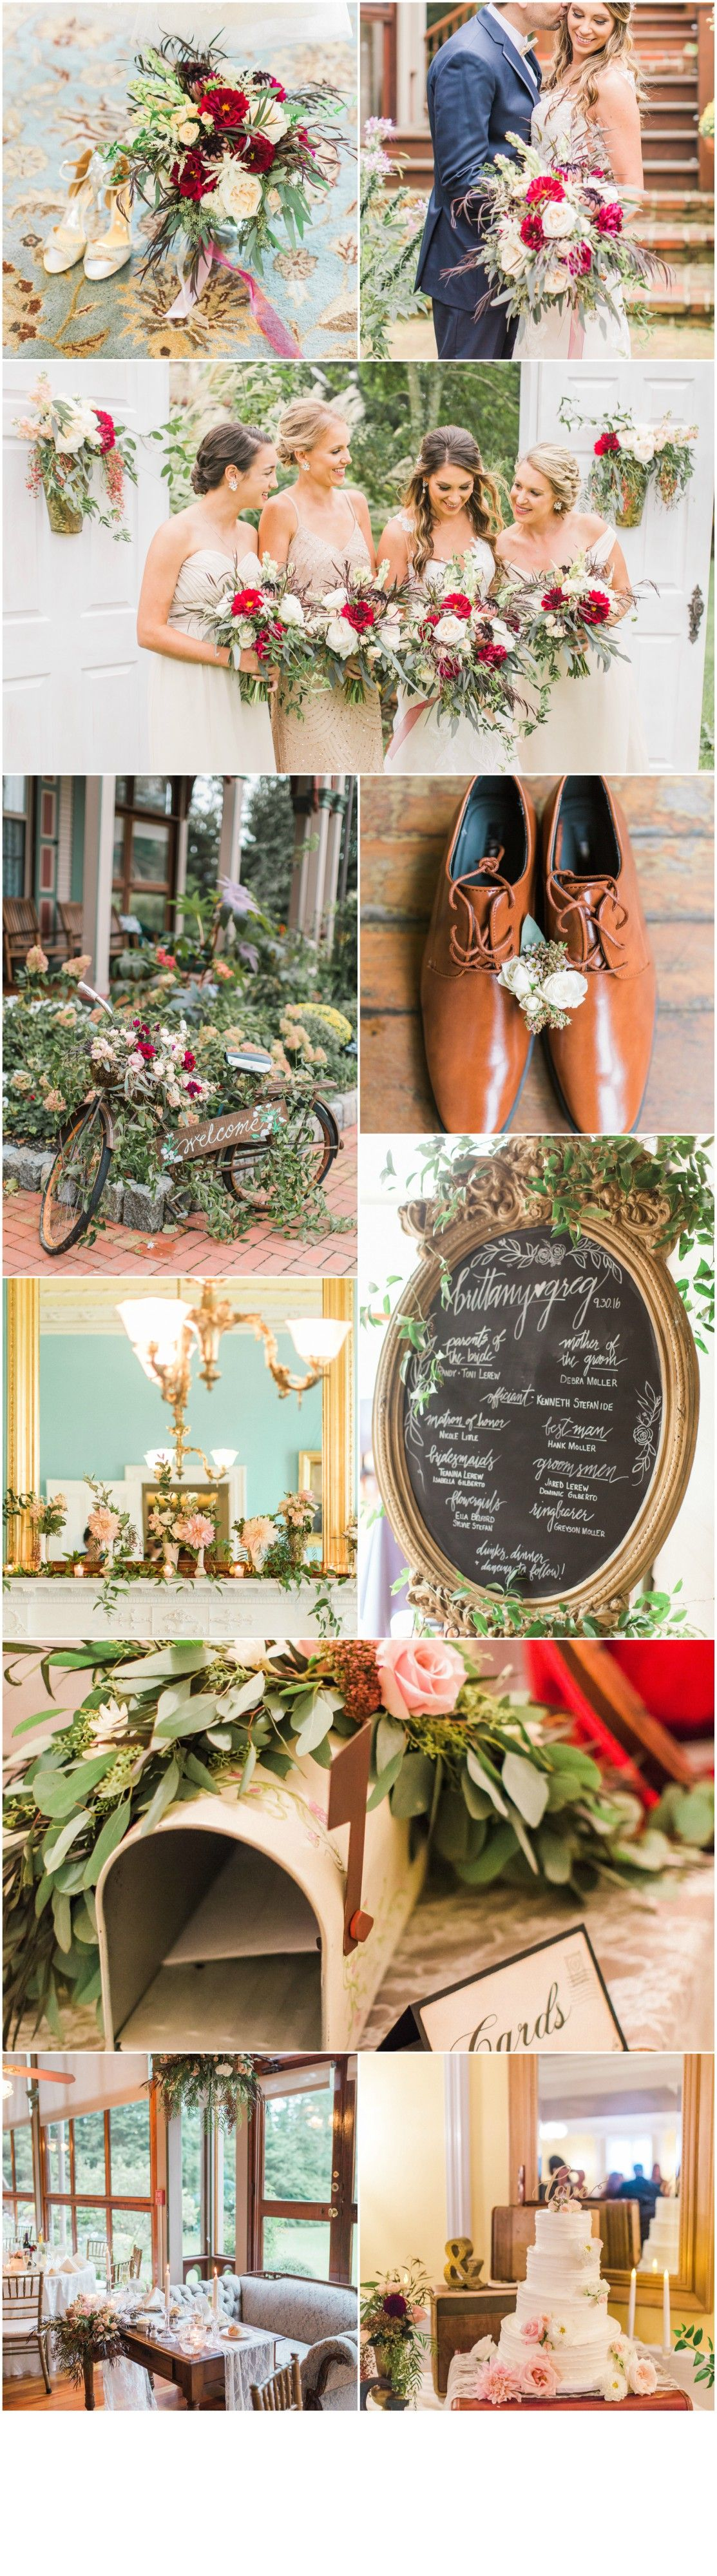 Cape May Wedding Florist - A Garden Party florist - Southern Mansion - Ashley Errington Photography - red wedding flowers - fall wedding - chalk art - vintage wedding